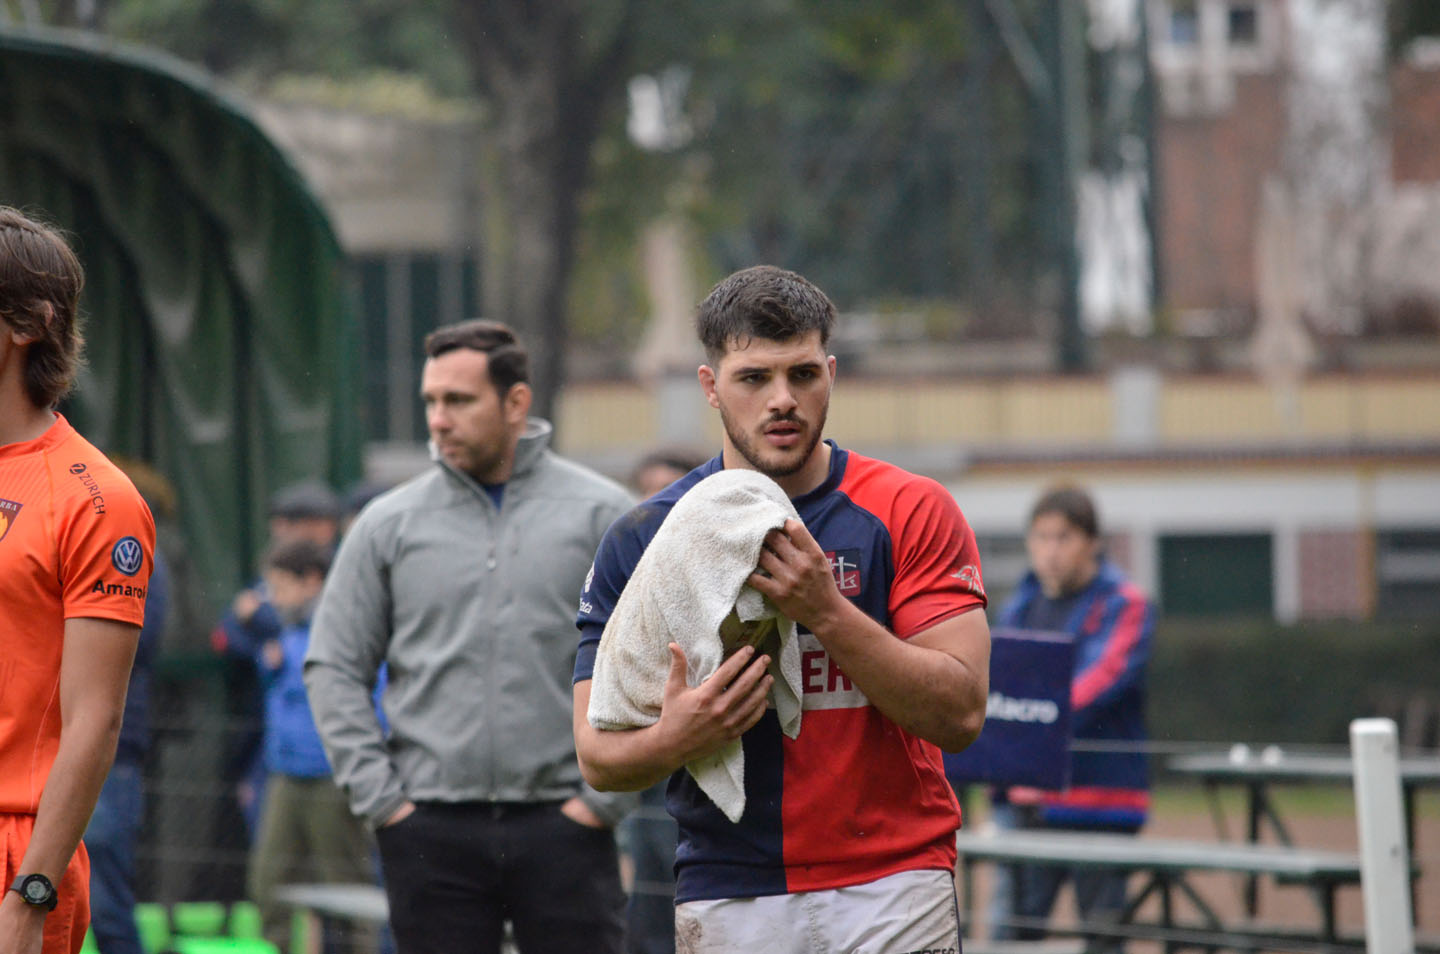 rugby-29-6 (207)